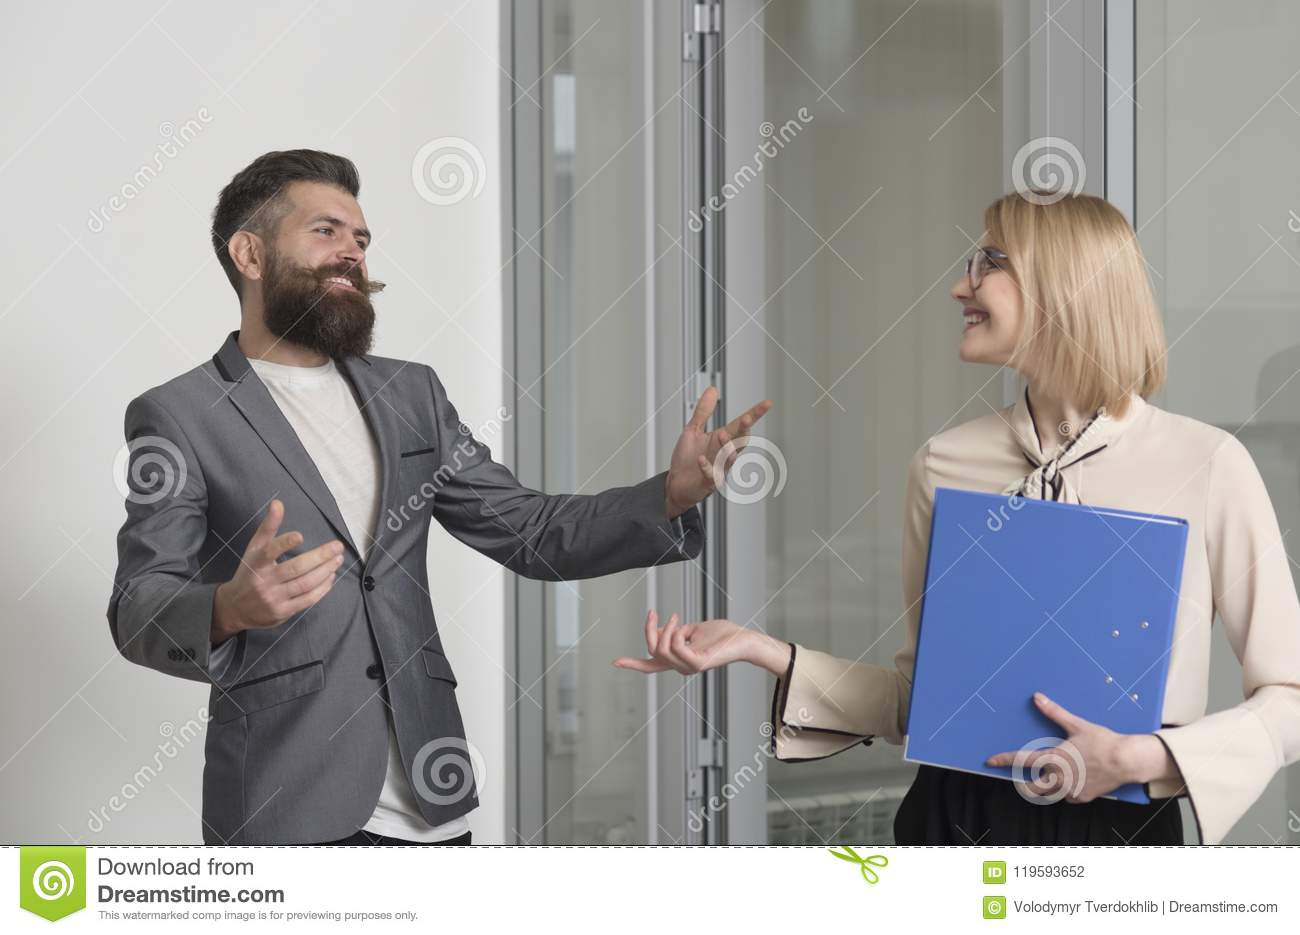 Business woman and man colleagues in office. Bearded man talk to sensual woman with binder. Office workers wear formal